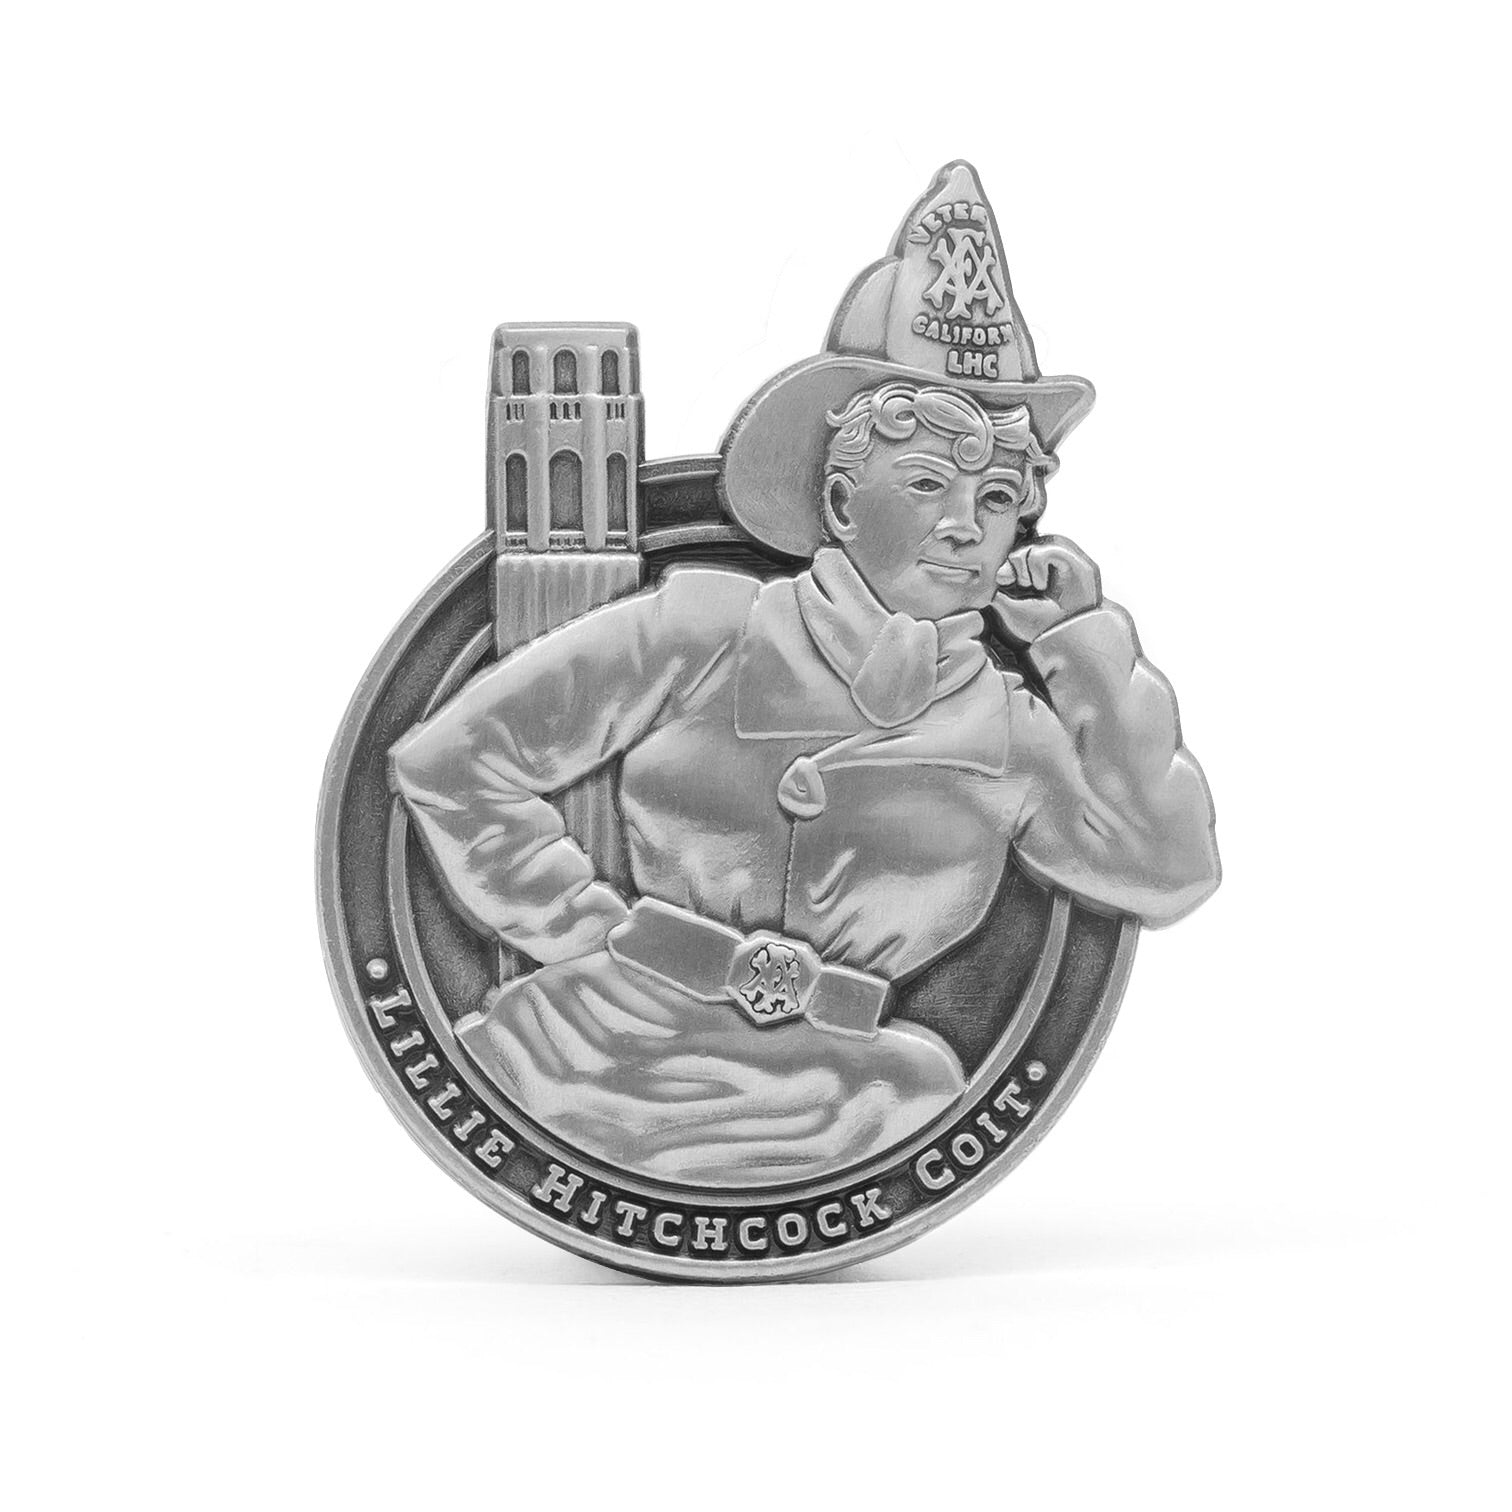 Lillie Hitchcock Coit molded pin